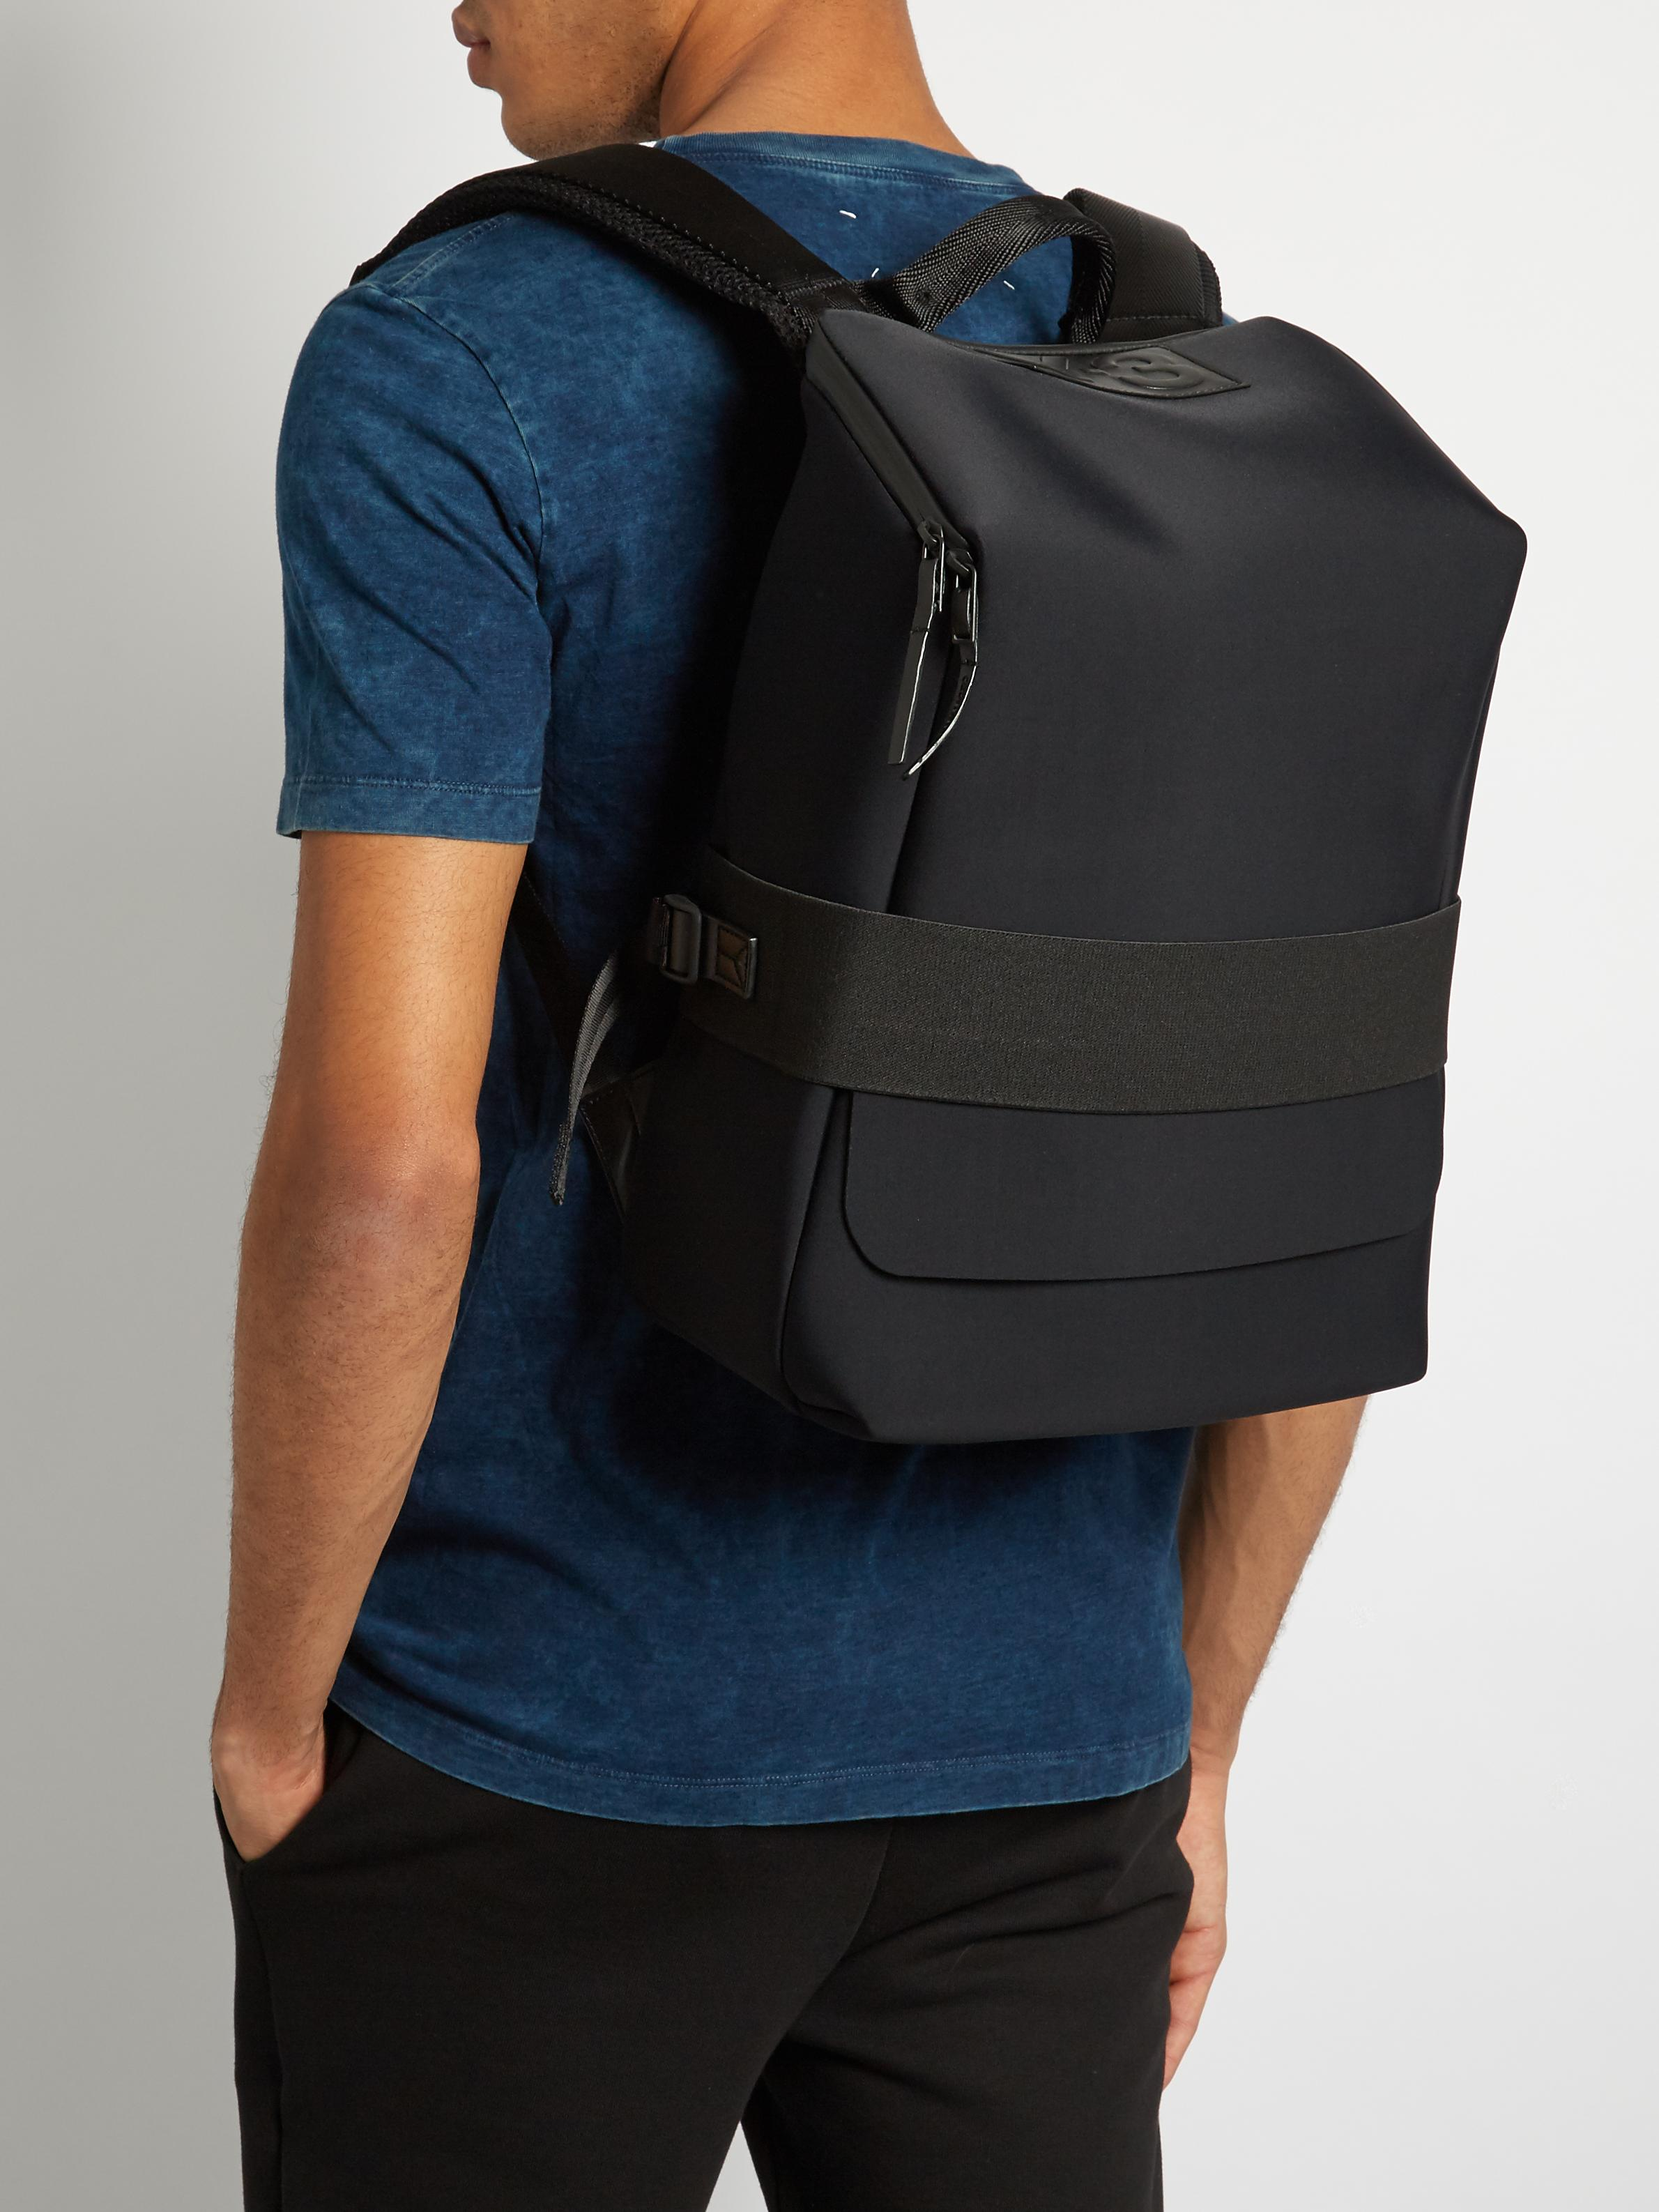 11cec5f08a08 Lyst - Y-3 Qasa Small Backpack in Black for Men